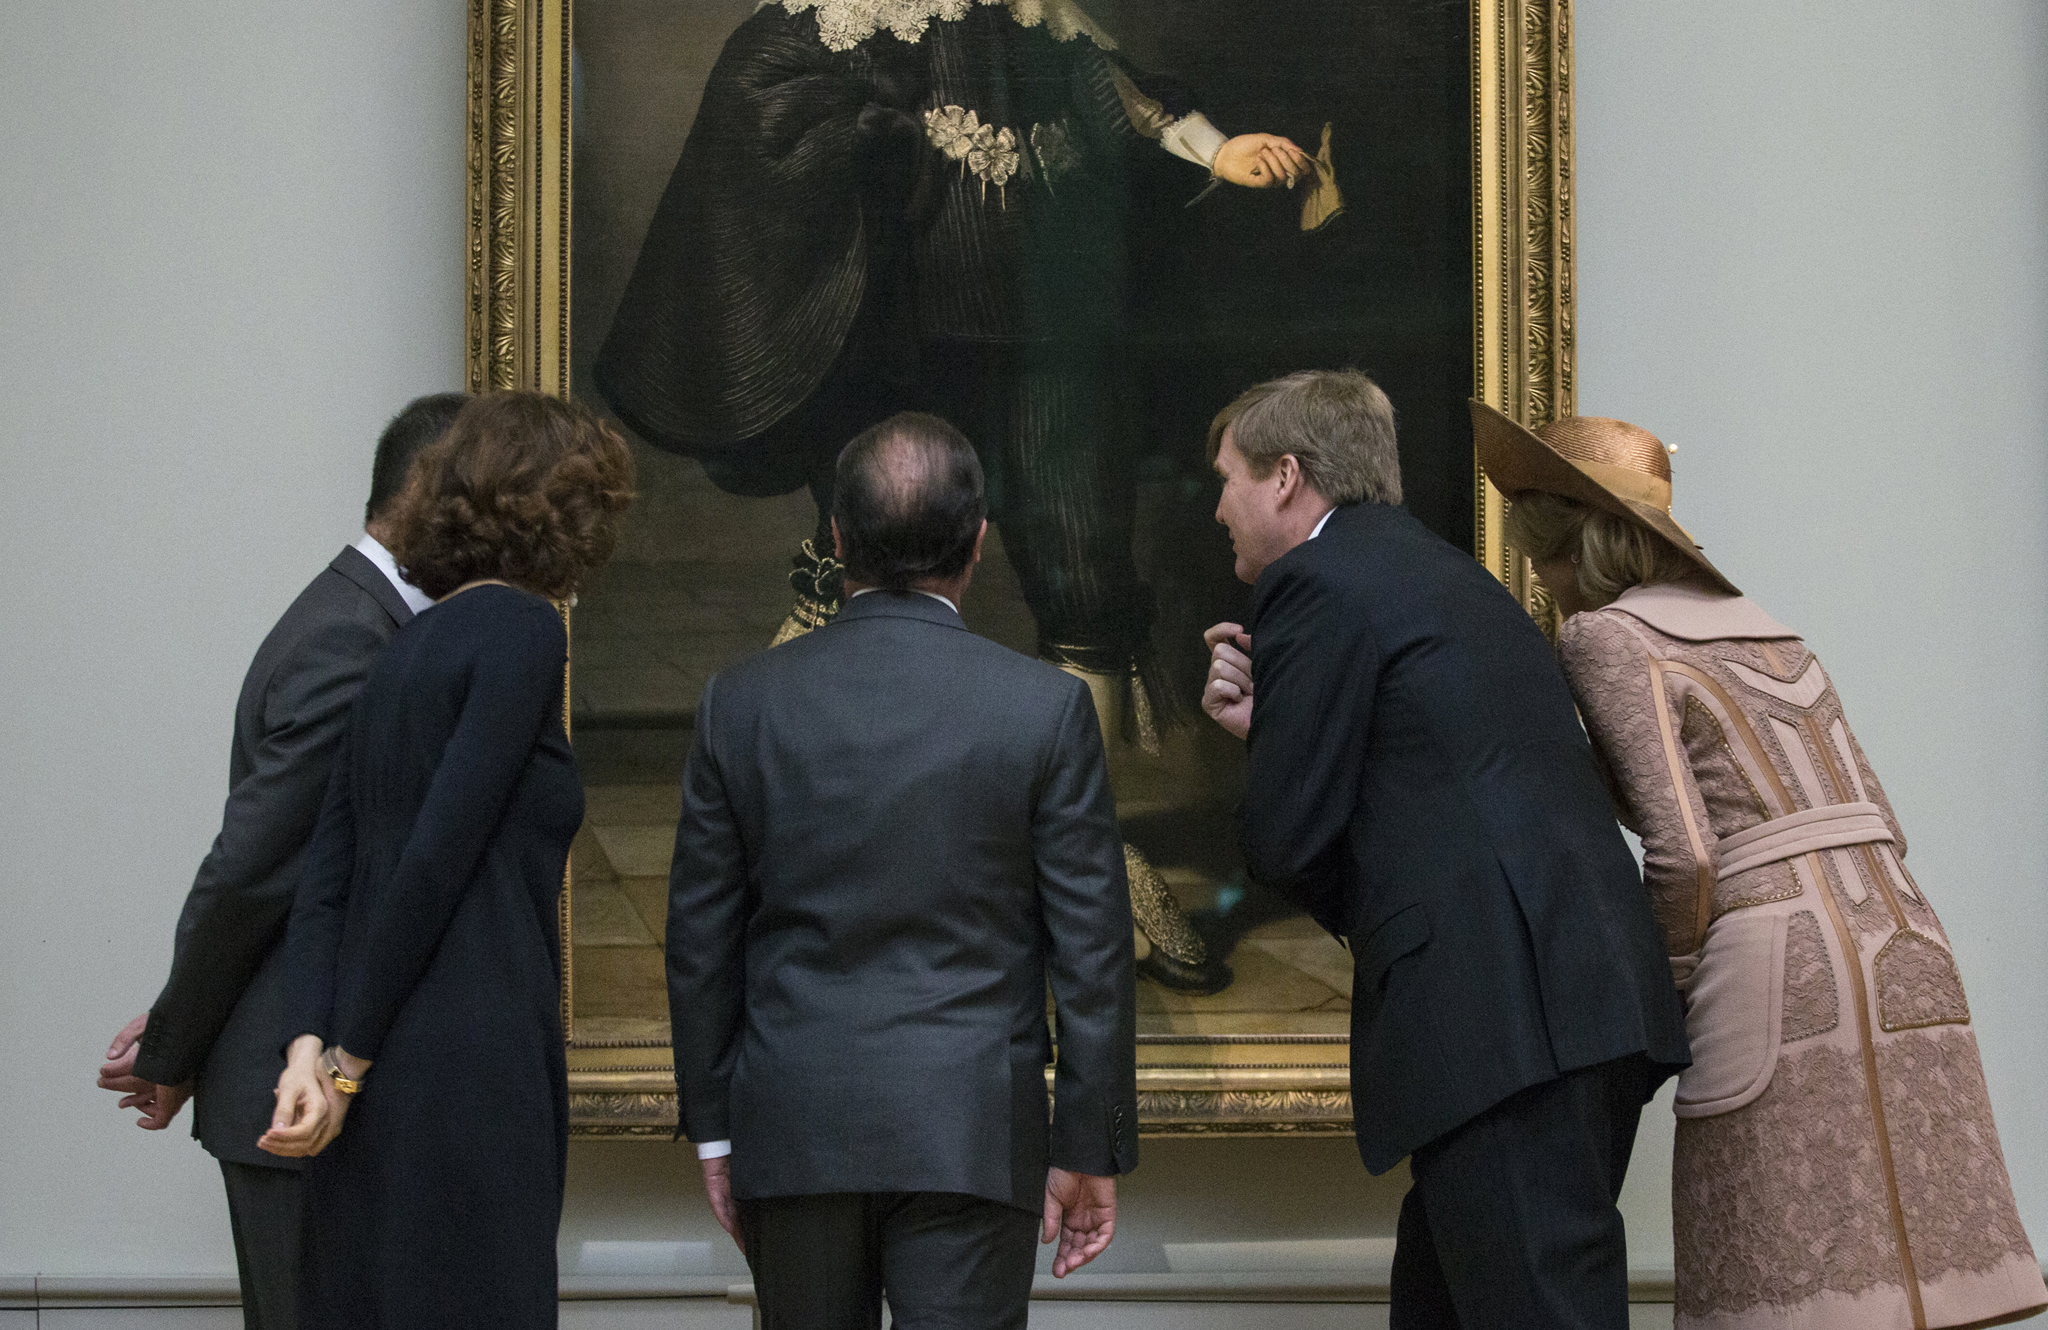 French President Francois Hollande, King Willem Alexander and Queen Maxima of the Netherlands look at a Rembrandt painting during a visit at the Louvre Museum in Paris...French President Francois Hollande (C), King Willem Alexander (2ndR) and Queen Maxima (R) of the Netherlands look at a Rembrandt painting, Portrait of Marten Soolmans, during a visit at the Louvre Museum in Paris, France, as part of their State visit to France March 10, 2016.  REUTERS/Etienne Laurent/Pool